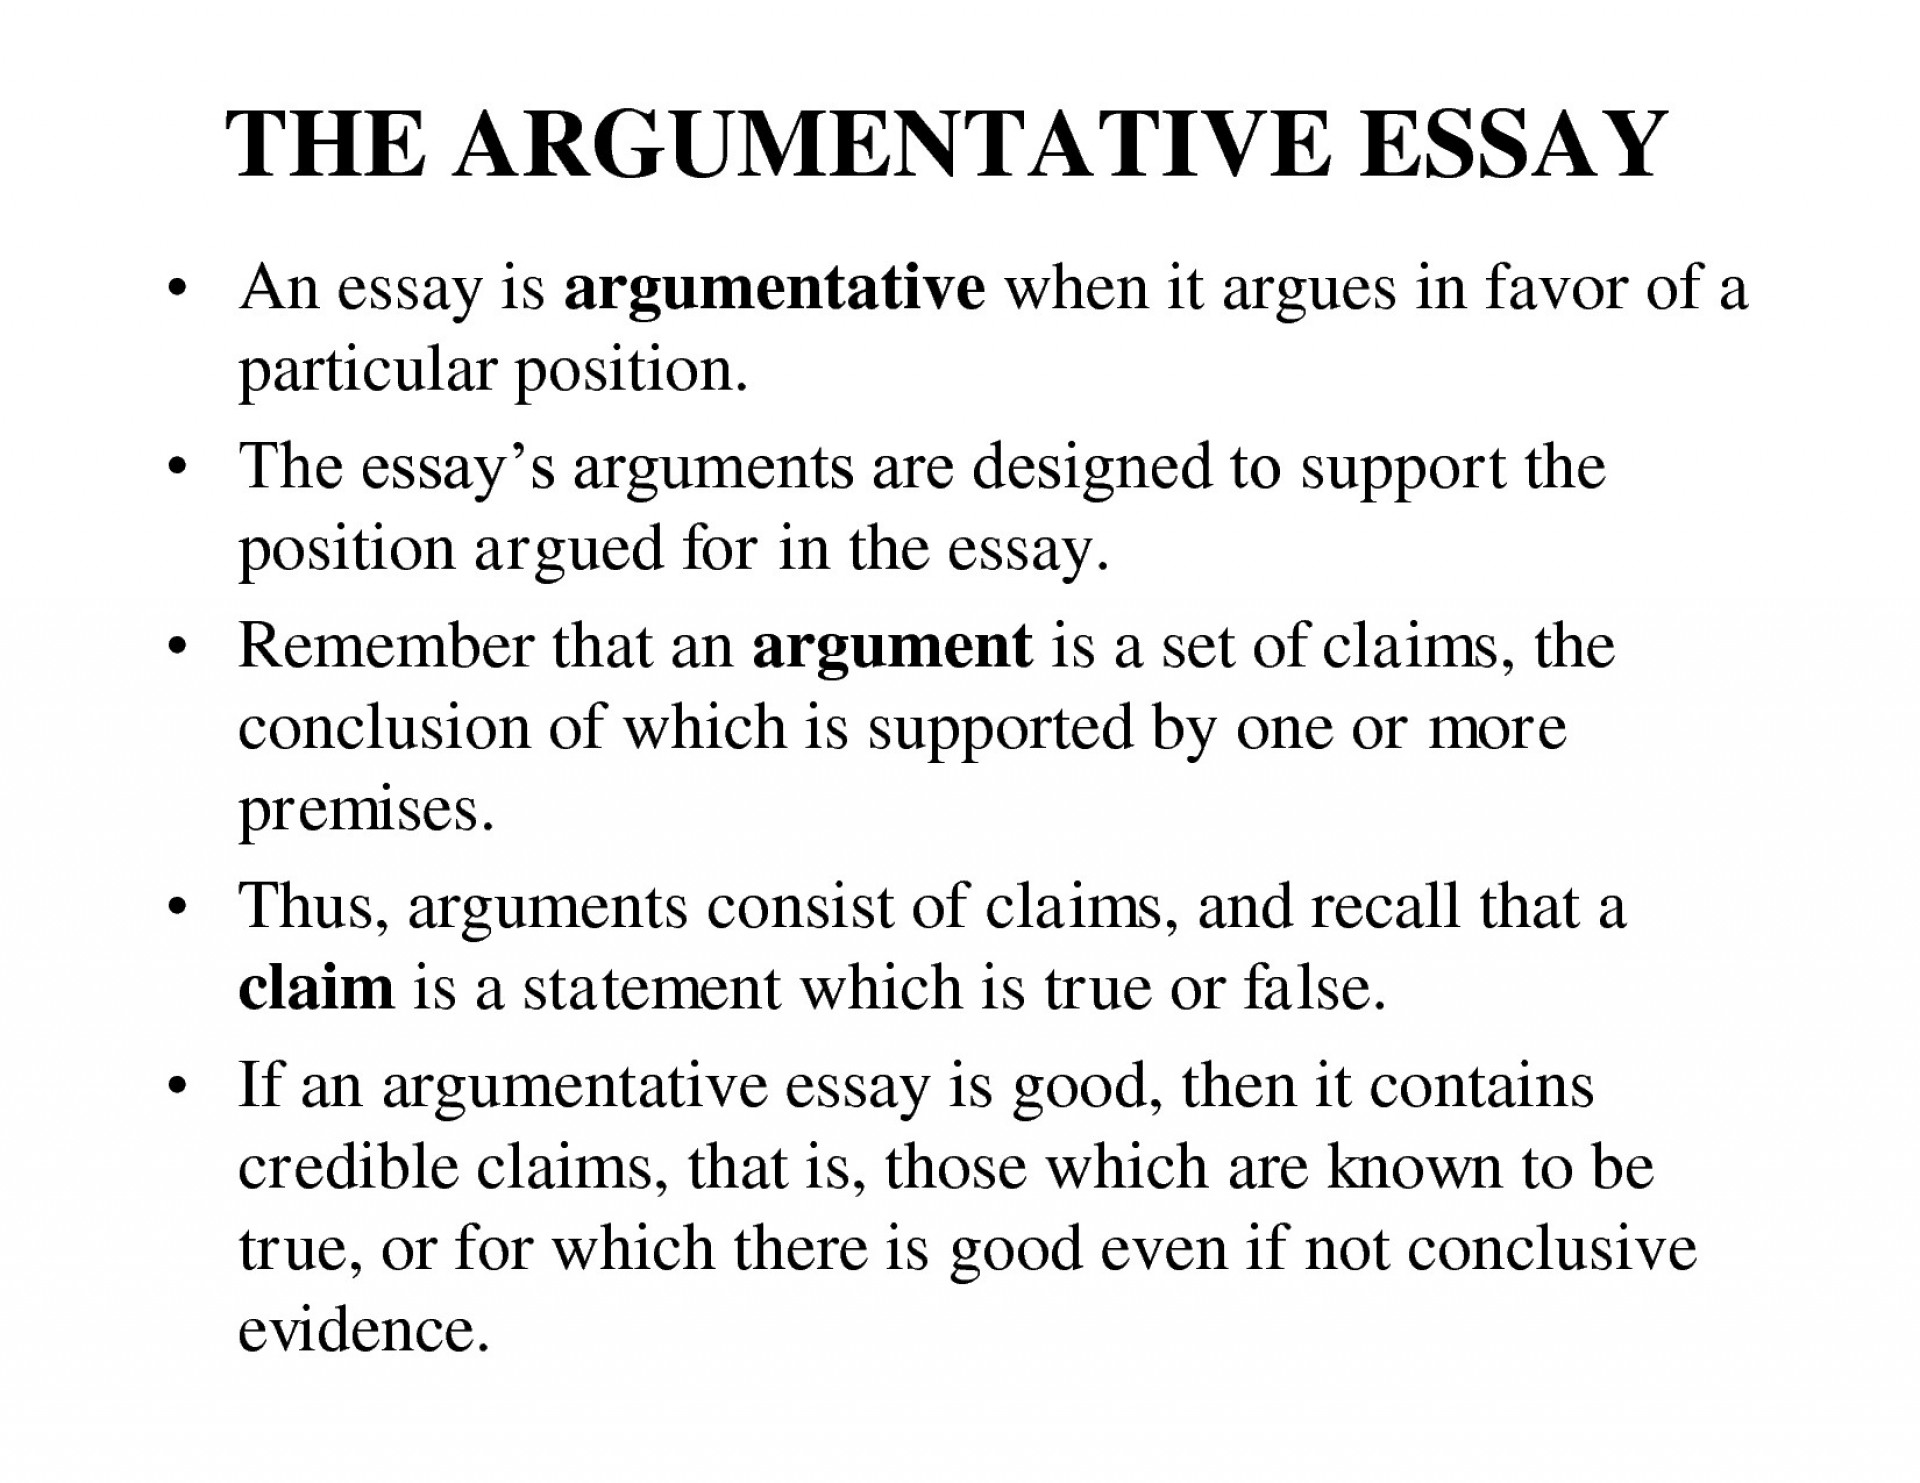 001 How To Write Good Conclusion For An Essay Exampleentative World Of Concluding Paragraph Persuasive Gse Bookbinder Co Rega Examples Impressive A Analytical 1920